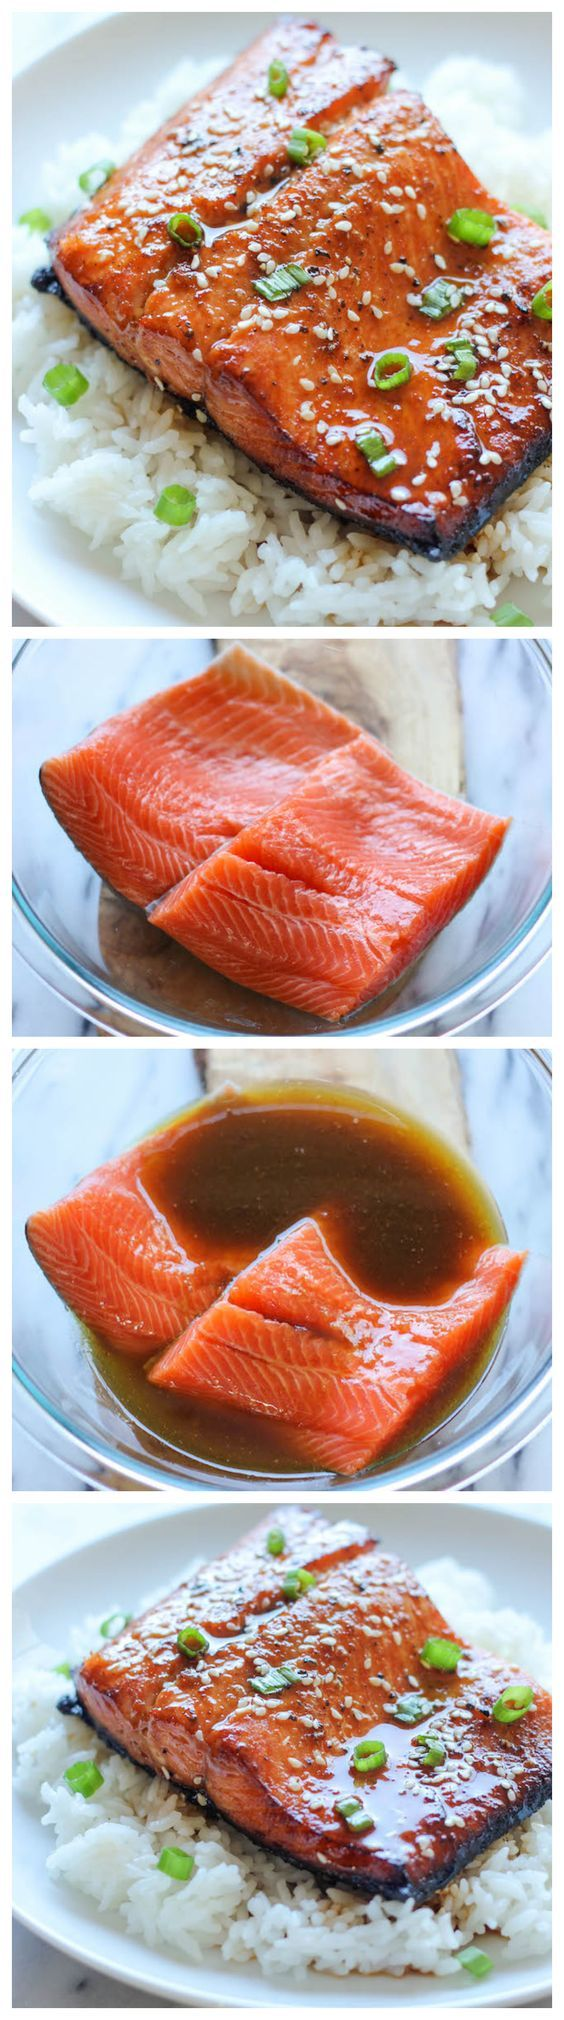 Sesame Ginger Salmon - A super easy salmon dish bursting with so much flavor, and it's hearty-healthy too!  Really good- crowd pleaser with entire family!